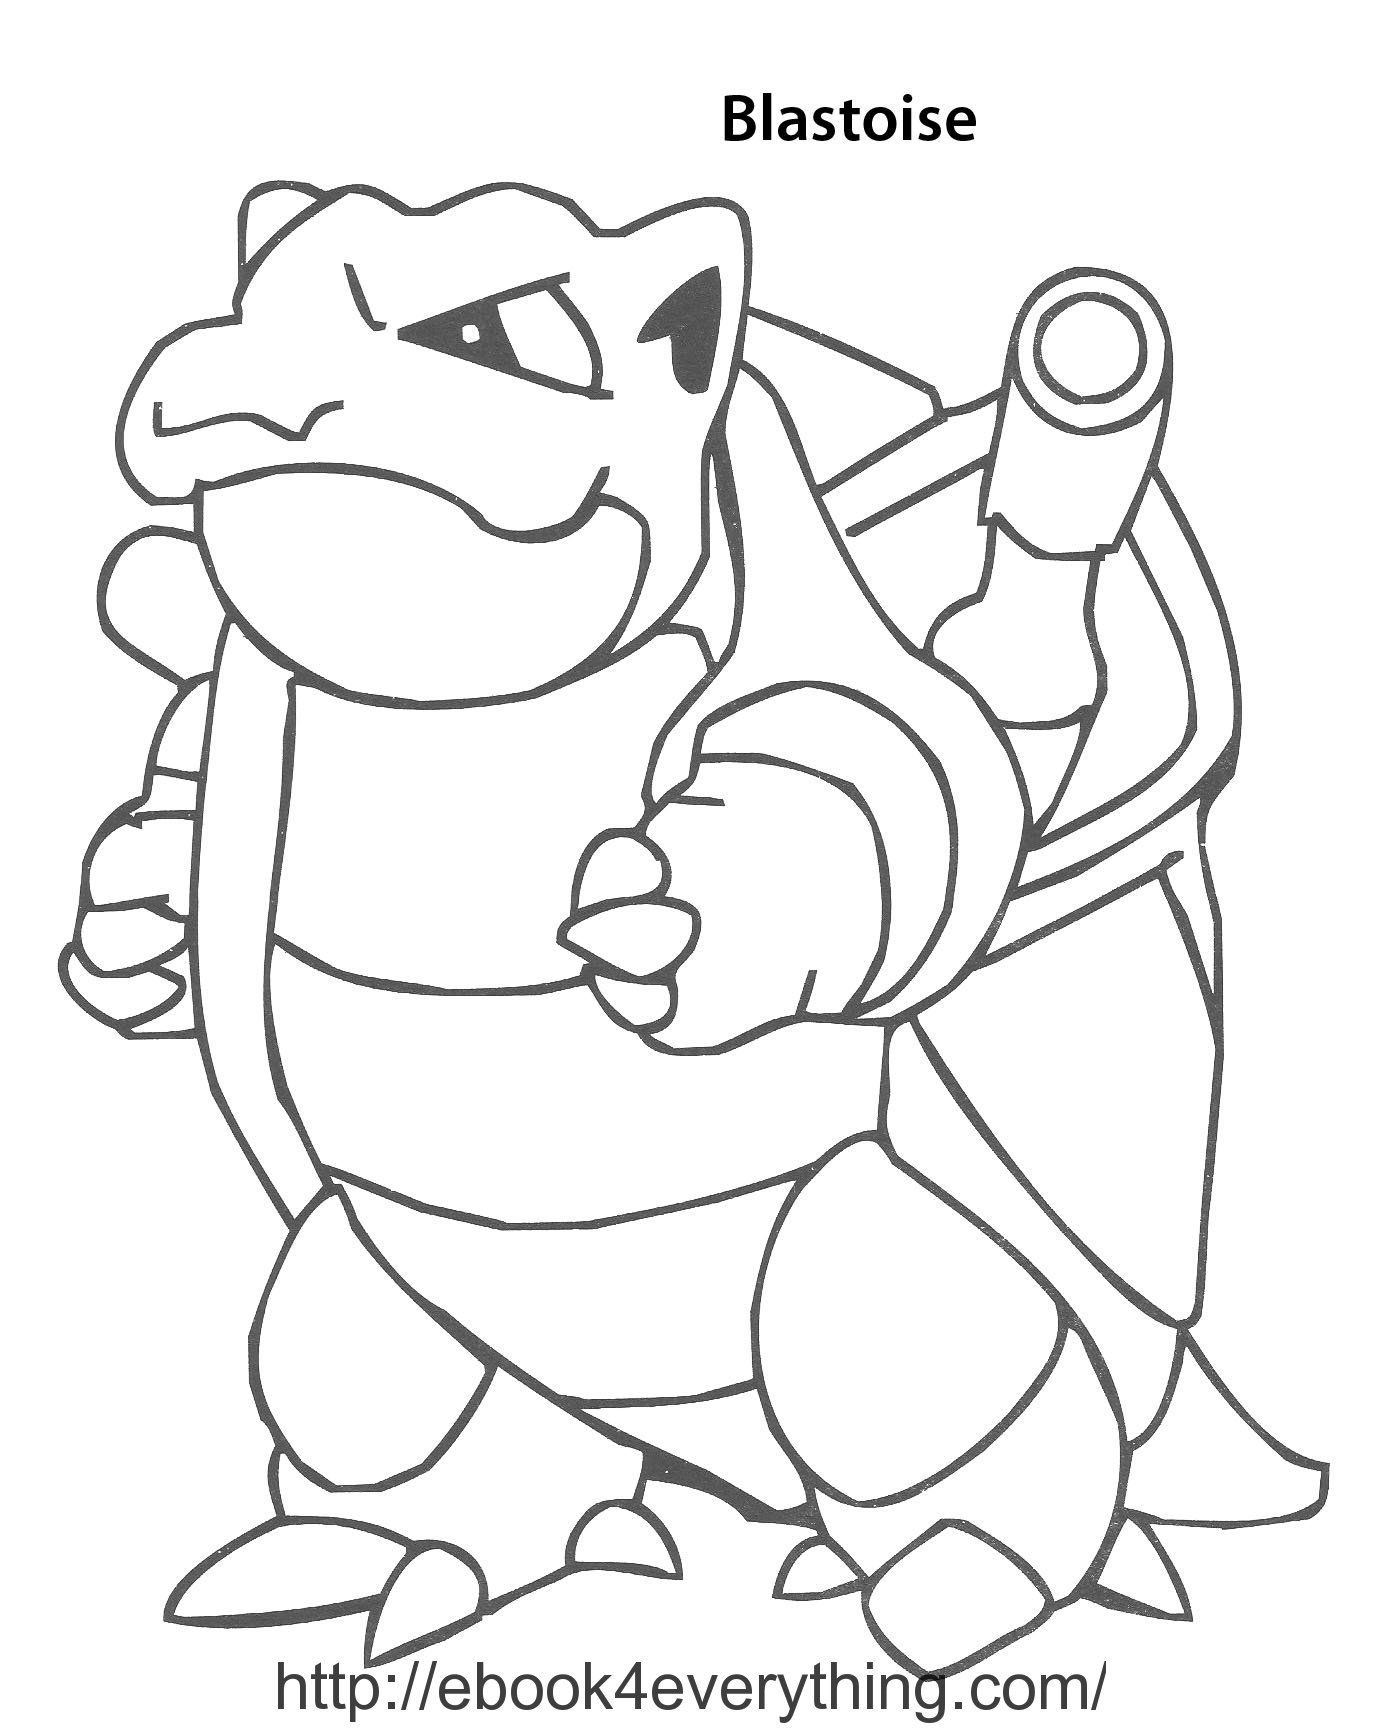 Pokemon coloring pages kyogre - Pokemon Blastoise Coloring Pages Images Pokemon Images